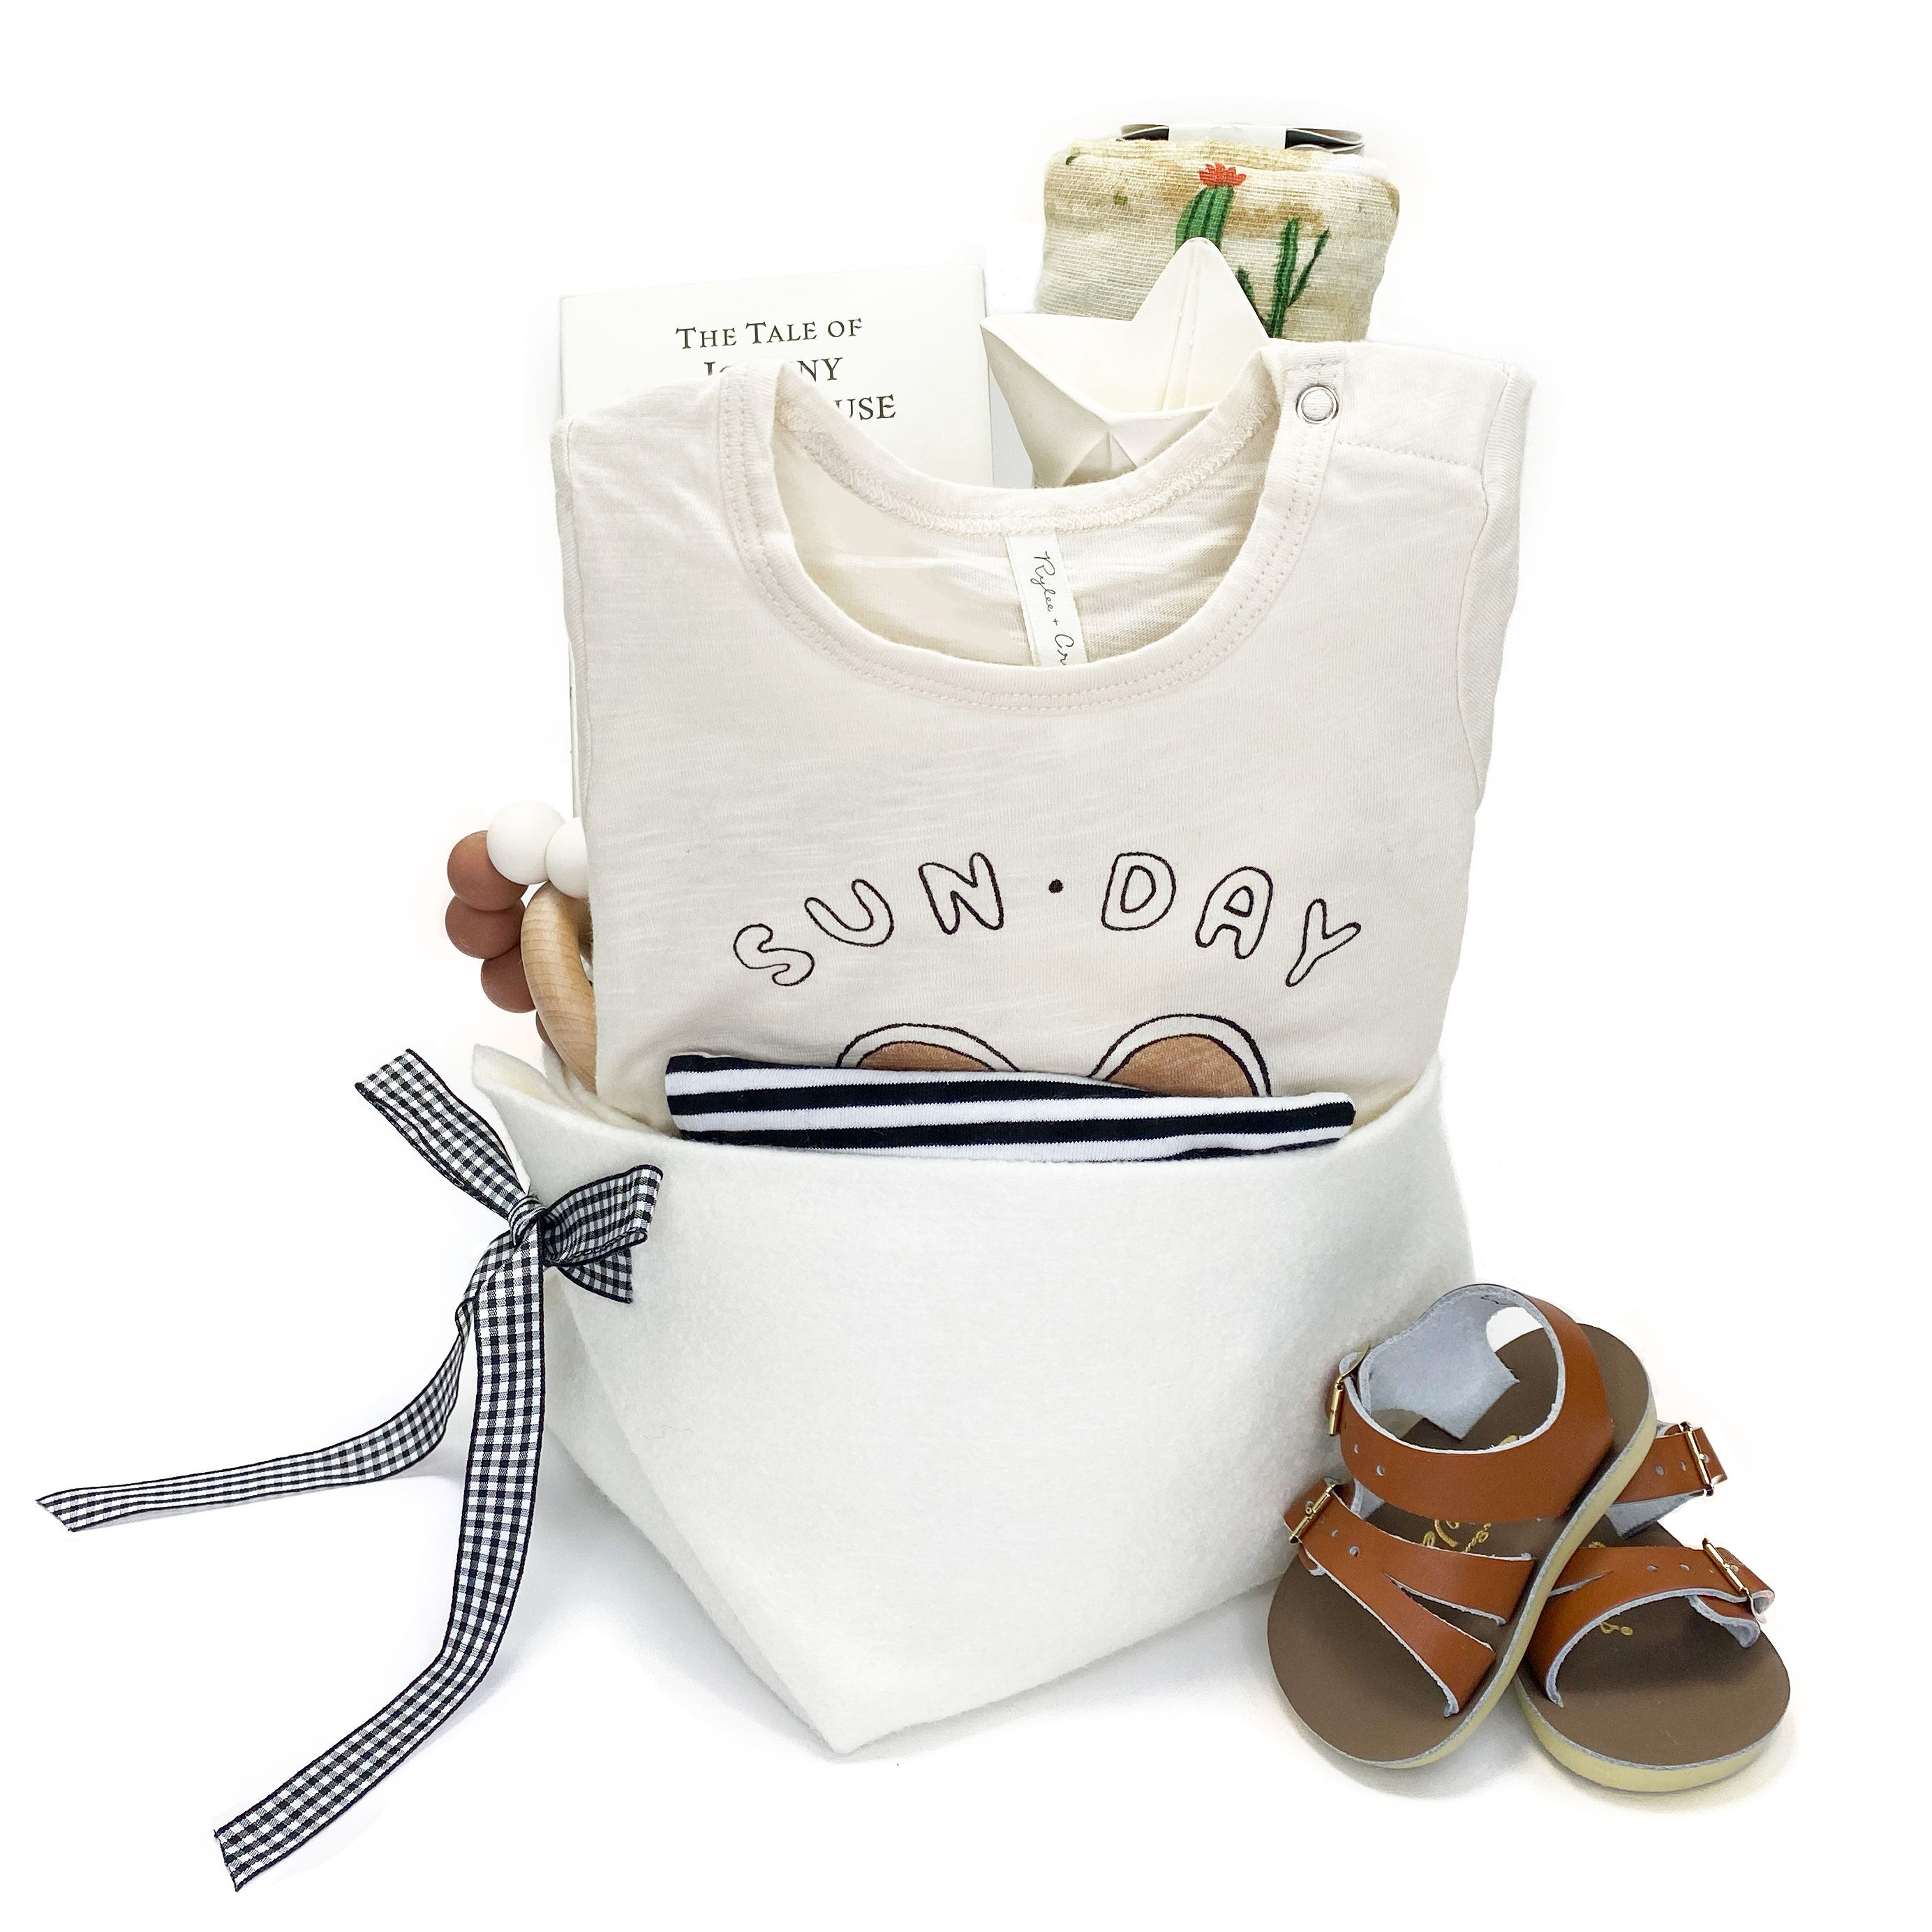 Luxury Baby Gift Basket featuring Rylee and Cru at Bonjour Baby Baskets